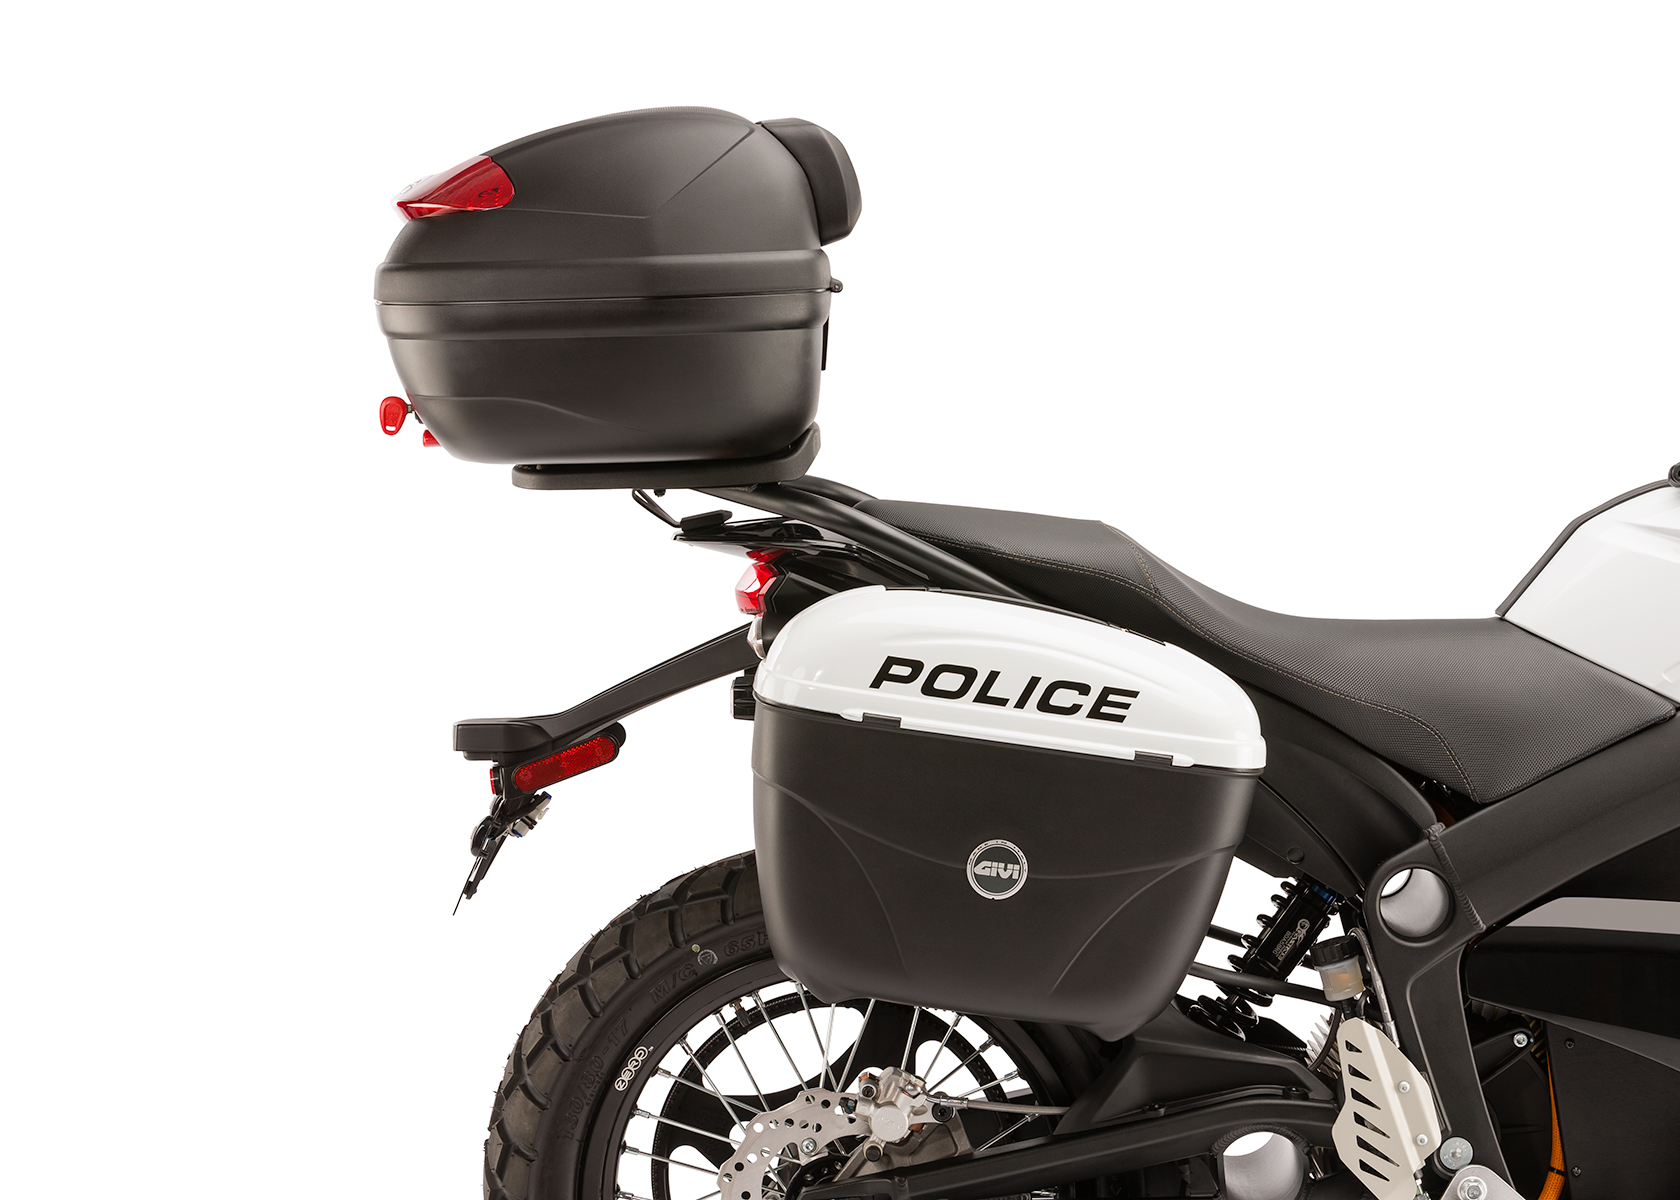 2013 zero police electric motorcycle right profile rear saddle bag and top box. Black Bedroom Furniture Sets. Home Design Ideas